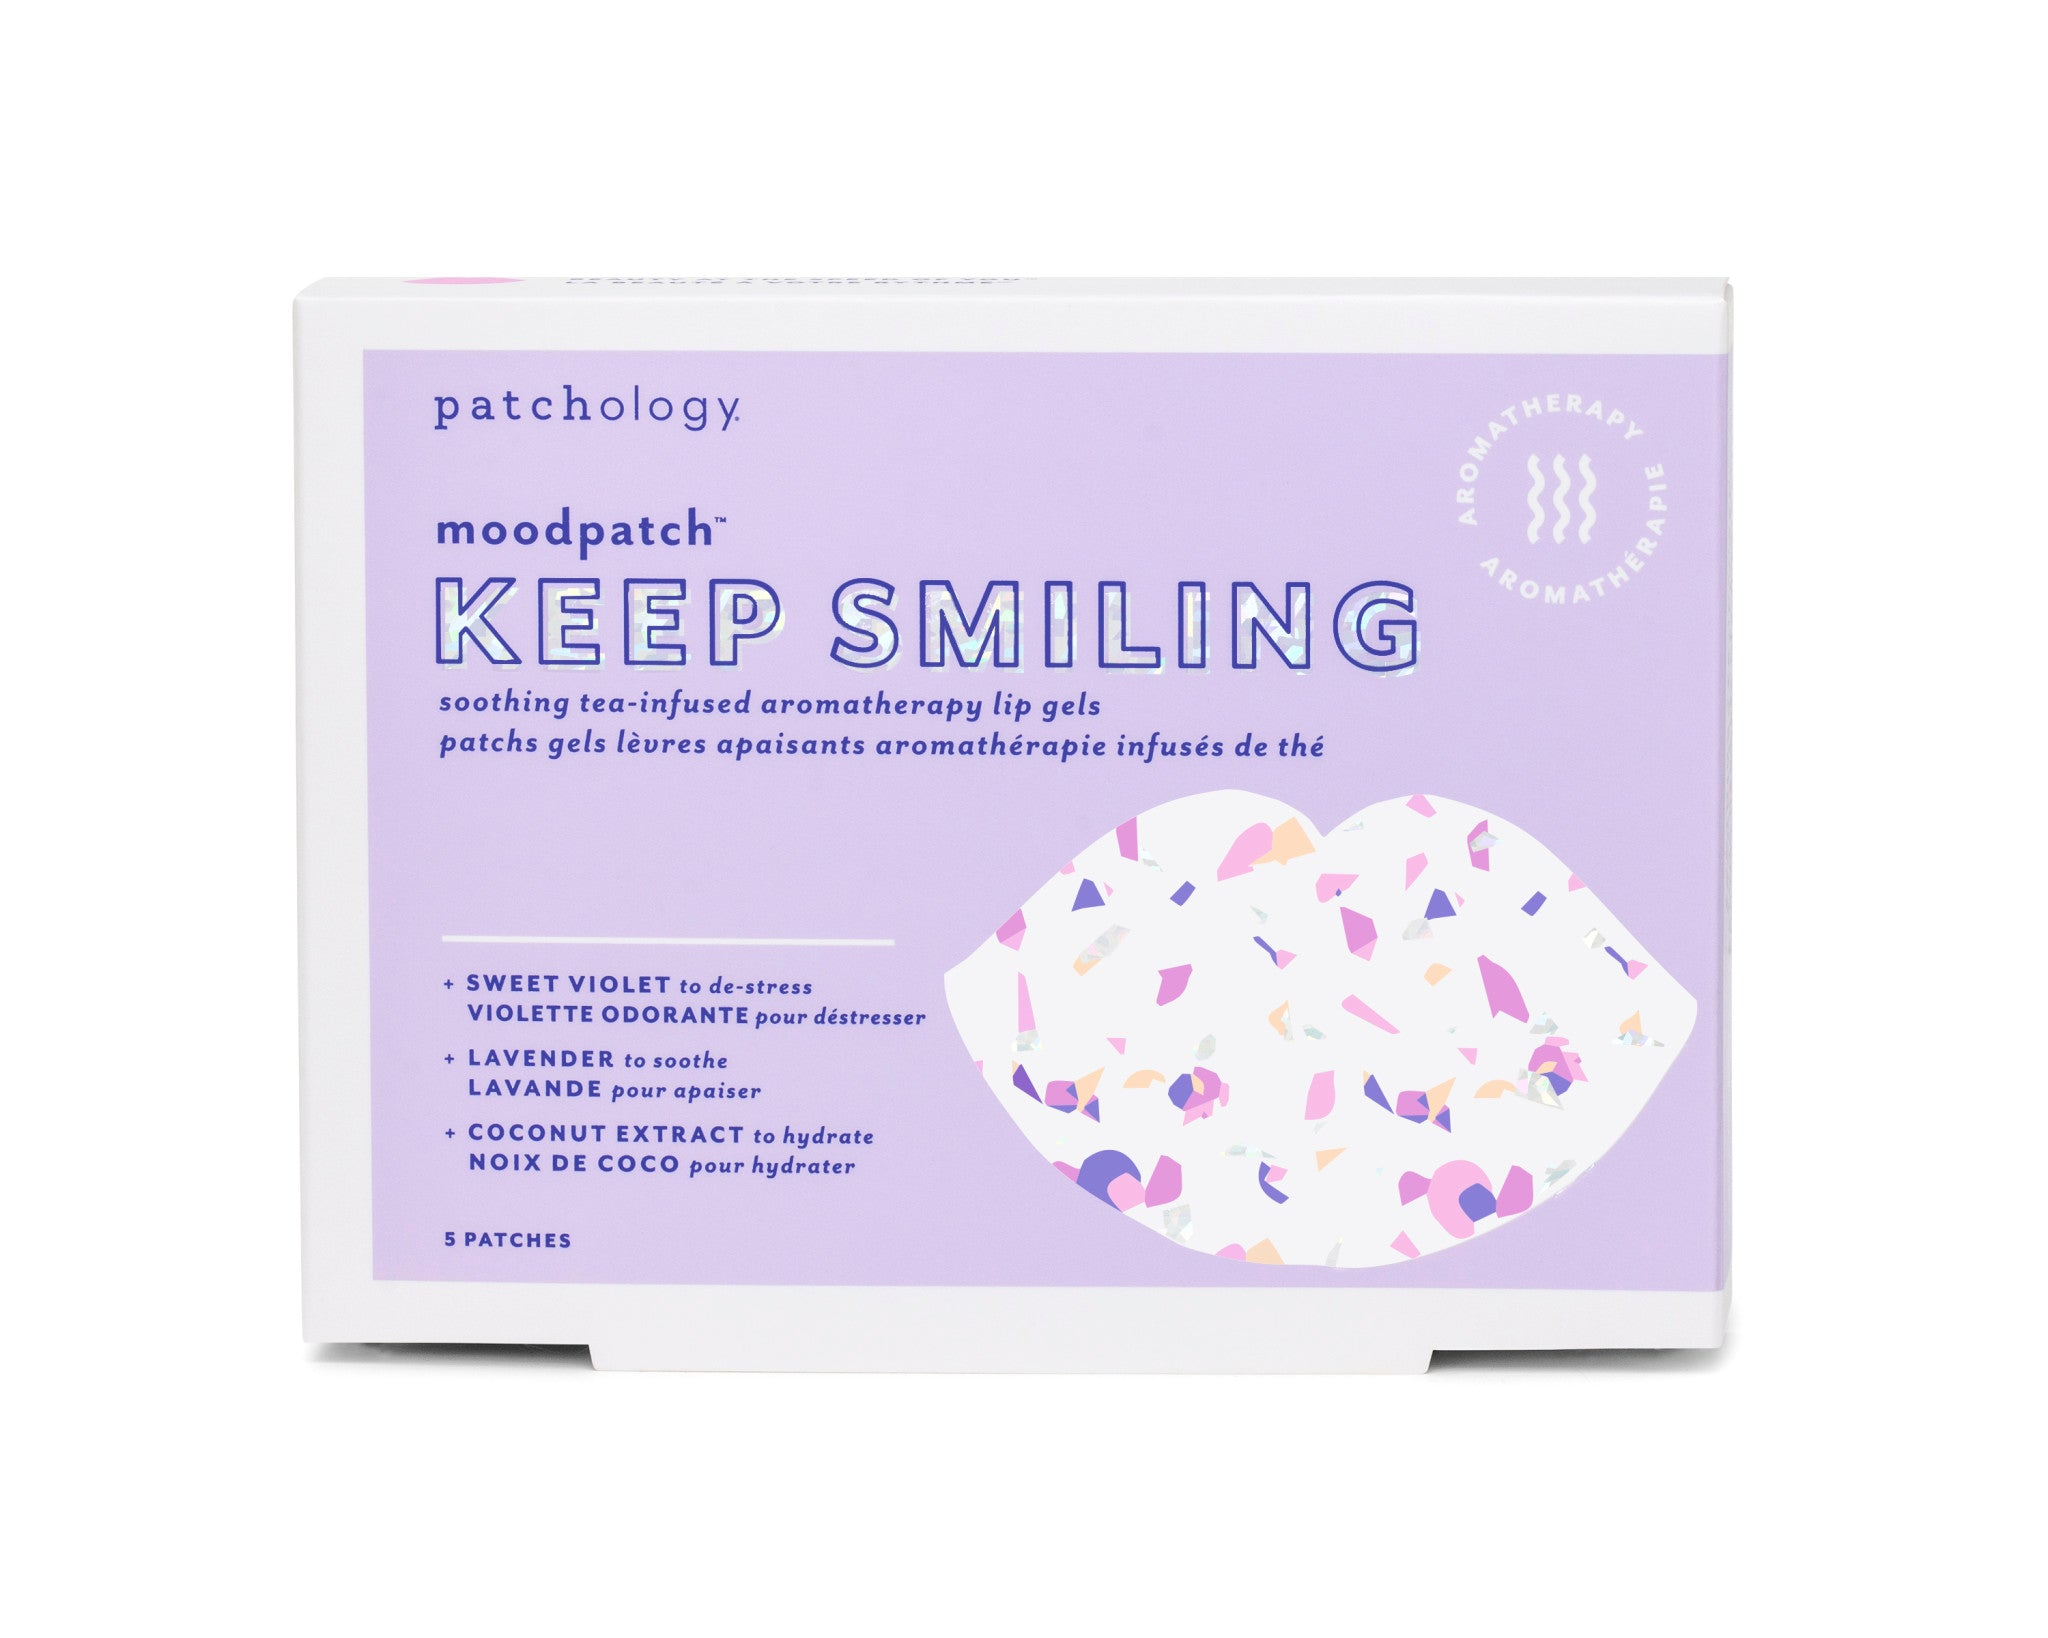 Keep Smiling Moodpatch Soothing Tea-Infused Aromatherapy Lip Gels